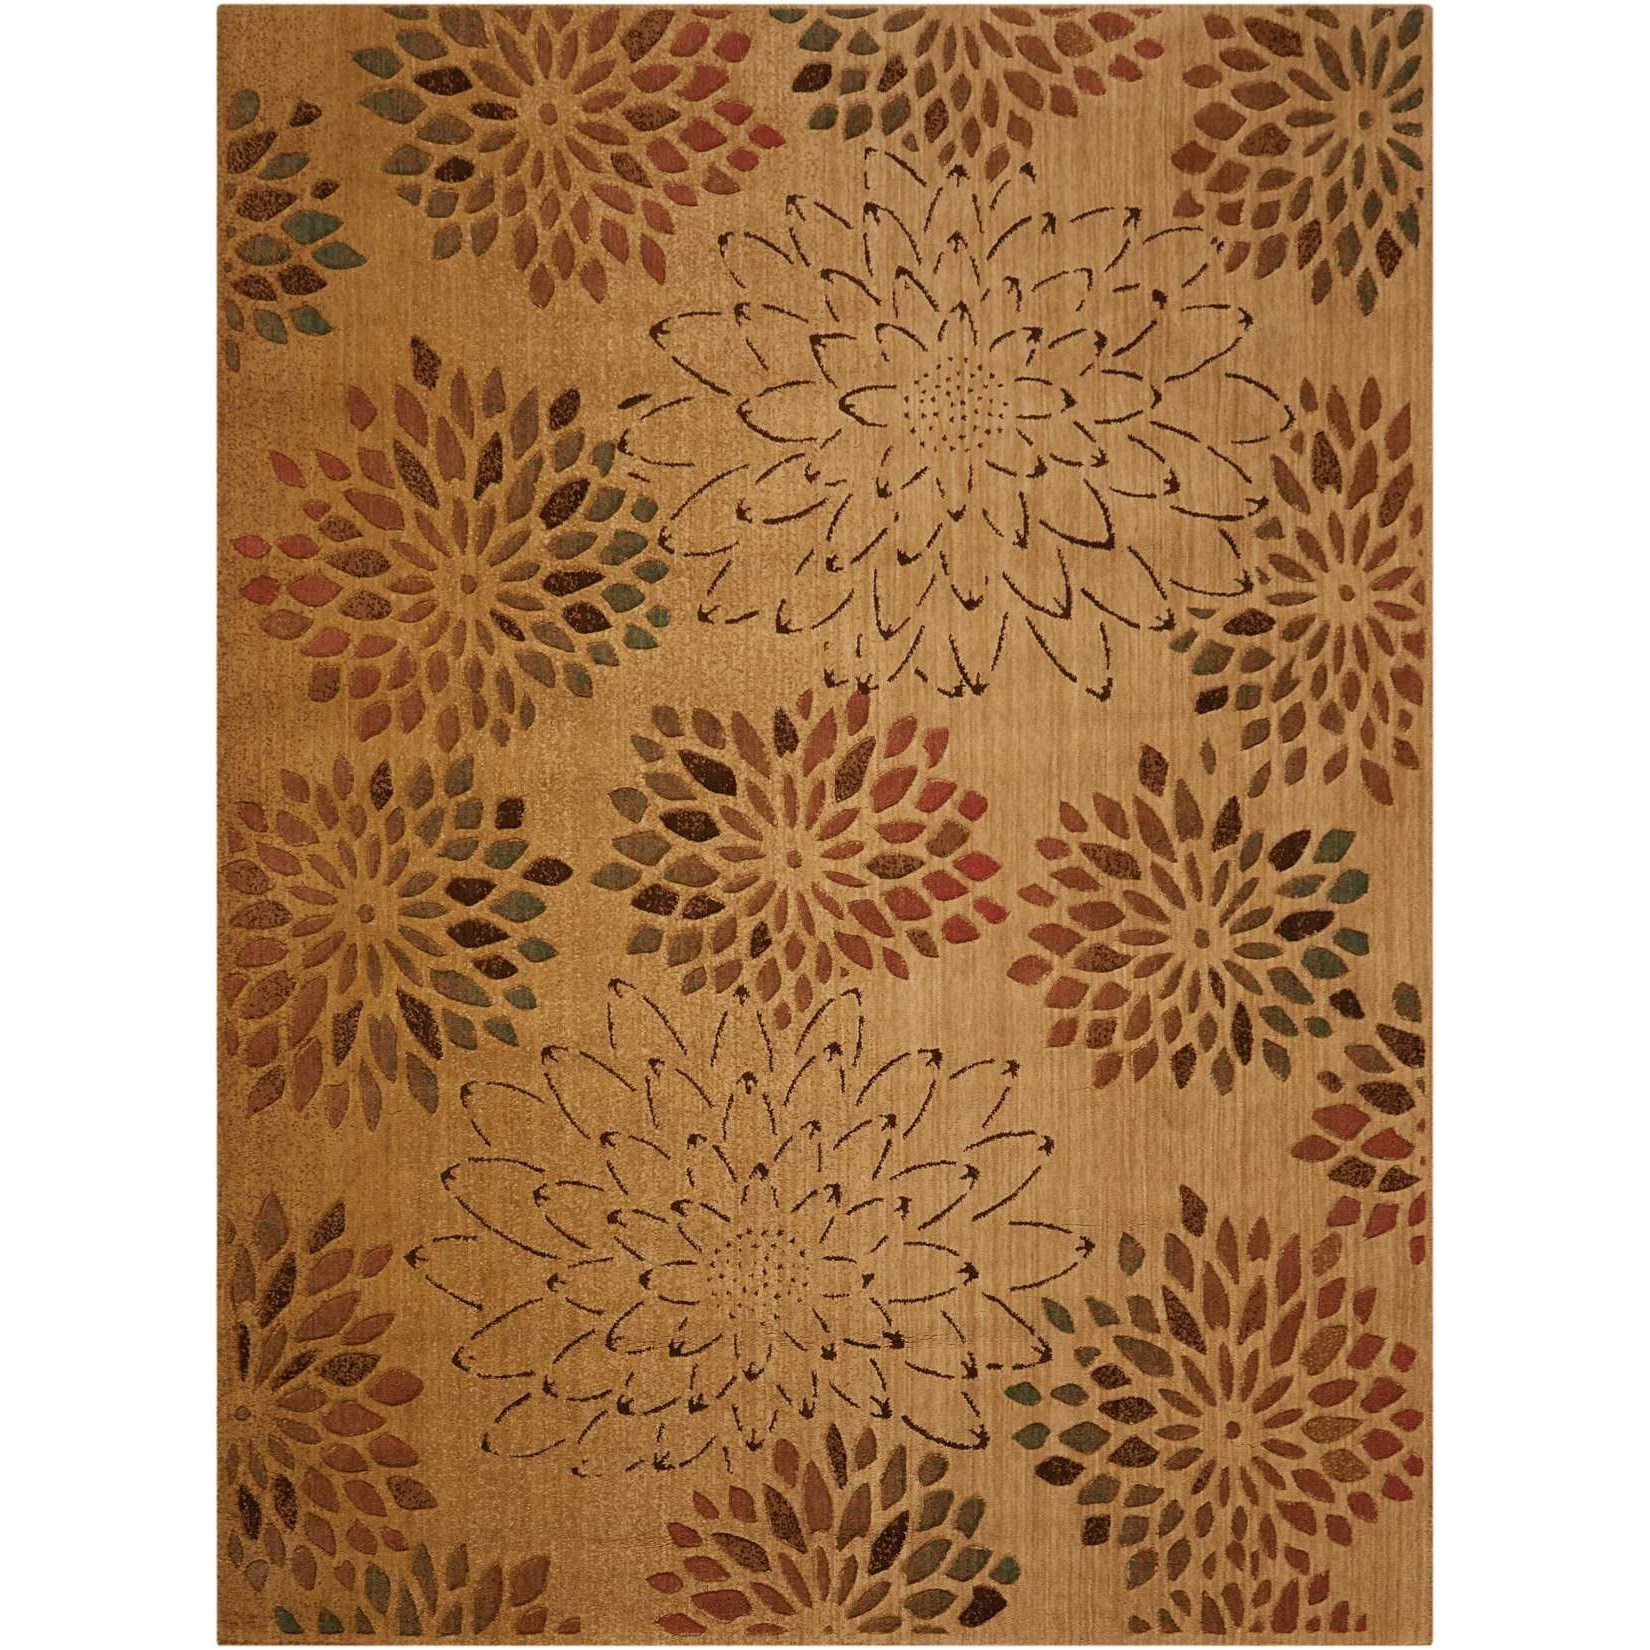 """Radiant Impression 5'6"""" x 7'5"""" Beige Rectangle Rug by Nourison at Home Collections Furniture"""